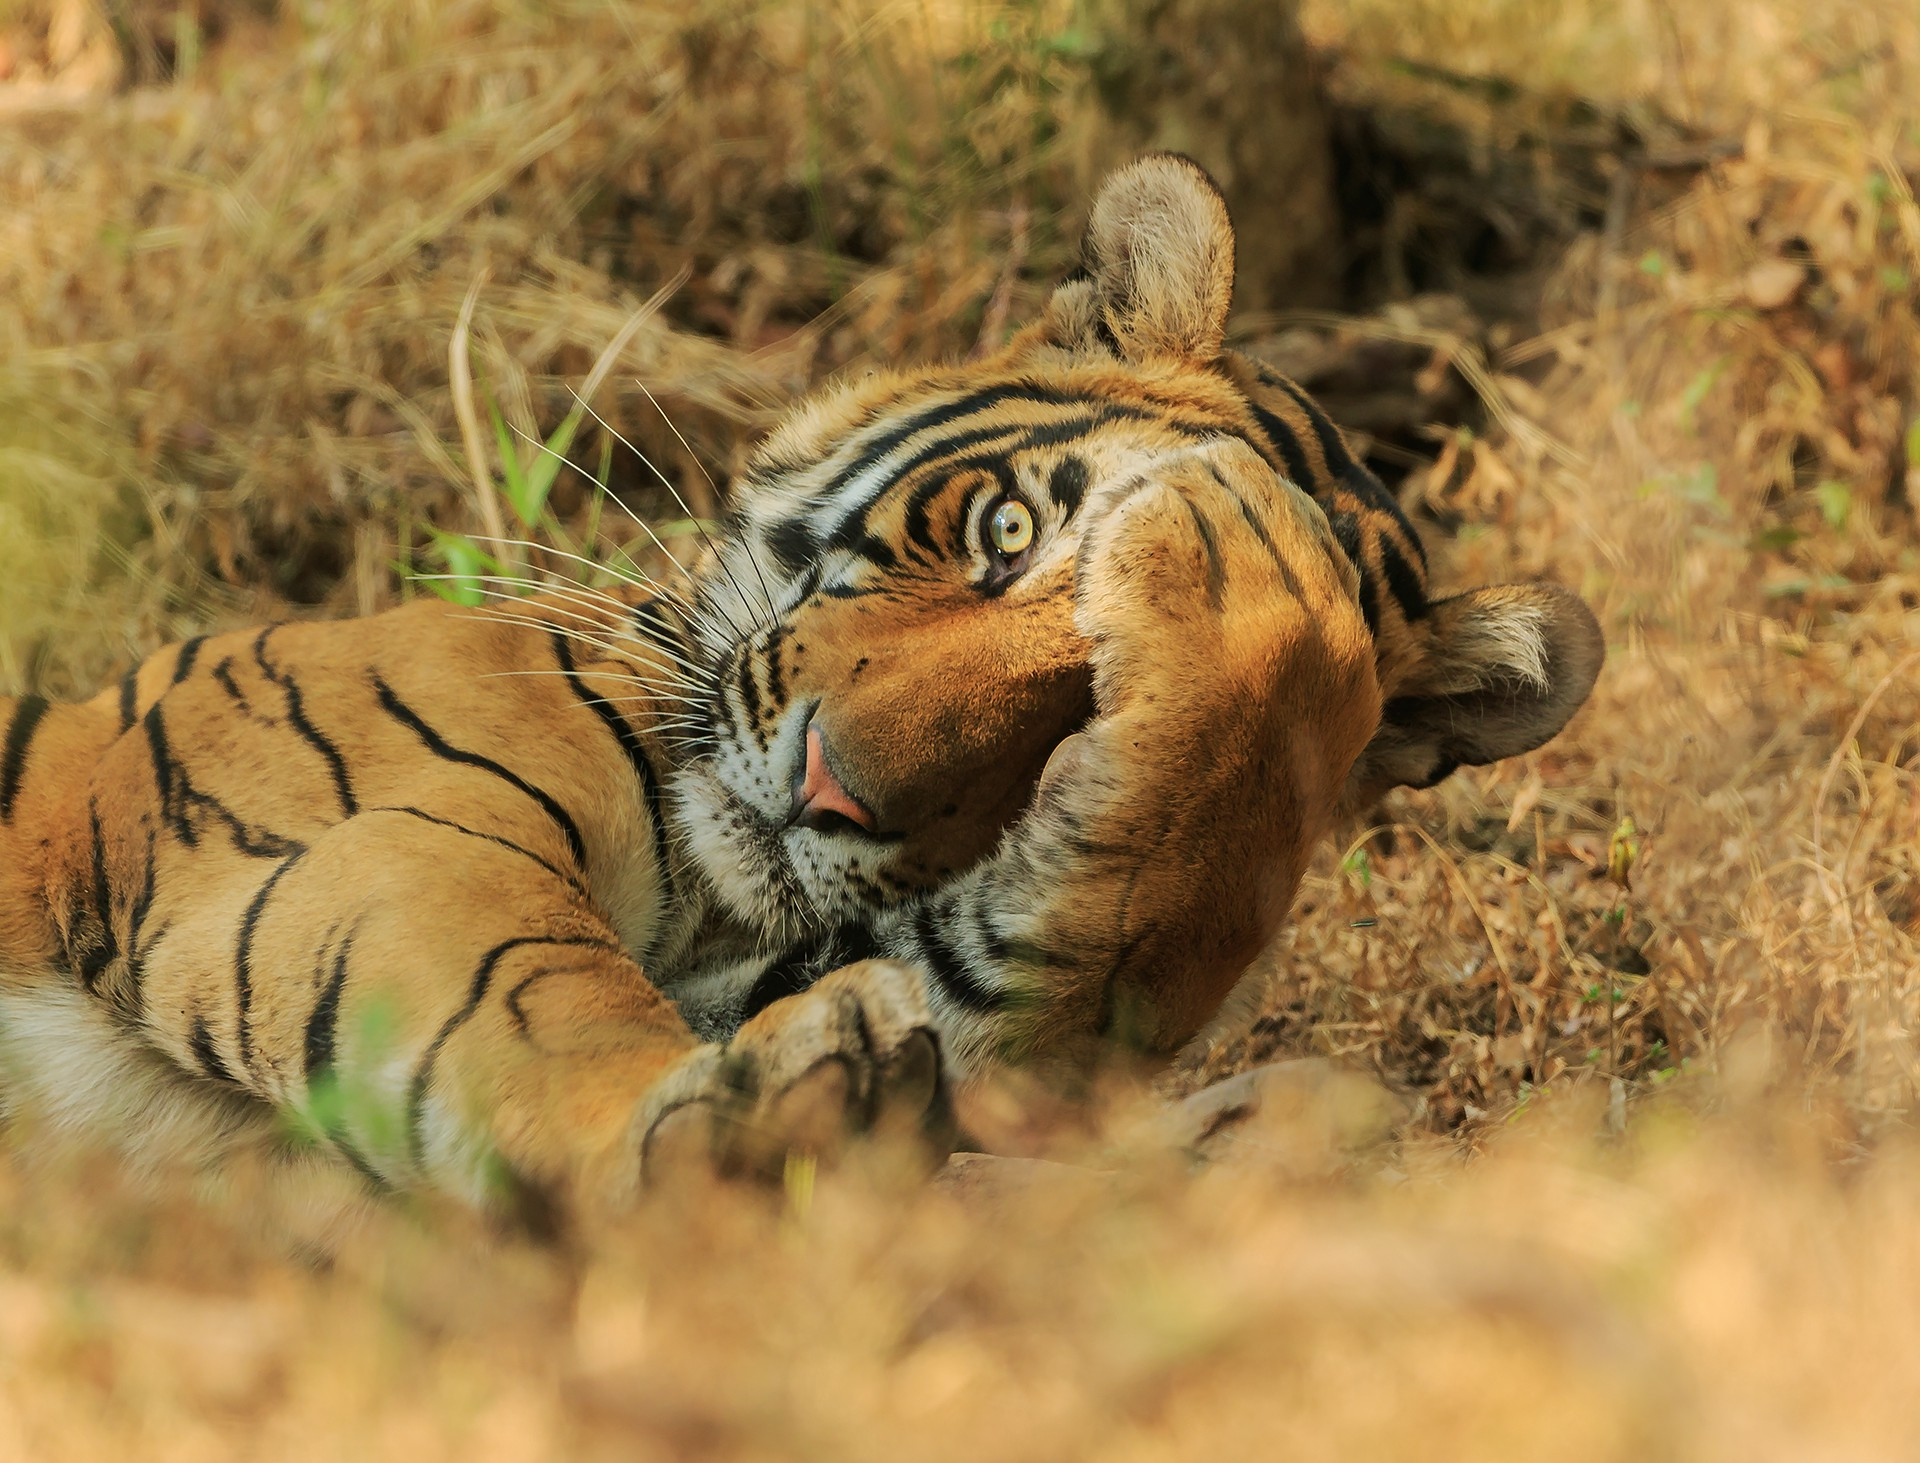 A young tiger whose paw is over part of his face and whose visible eye is opened wide